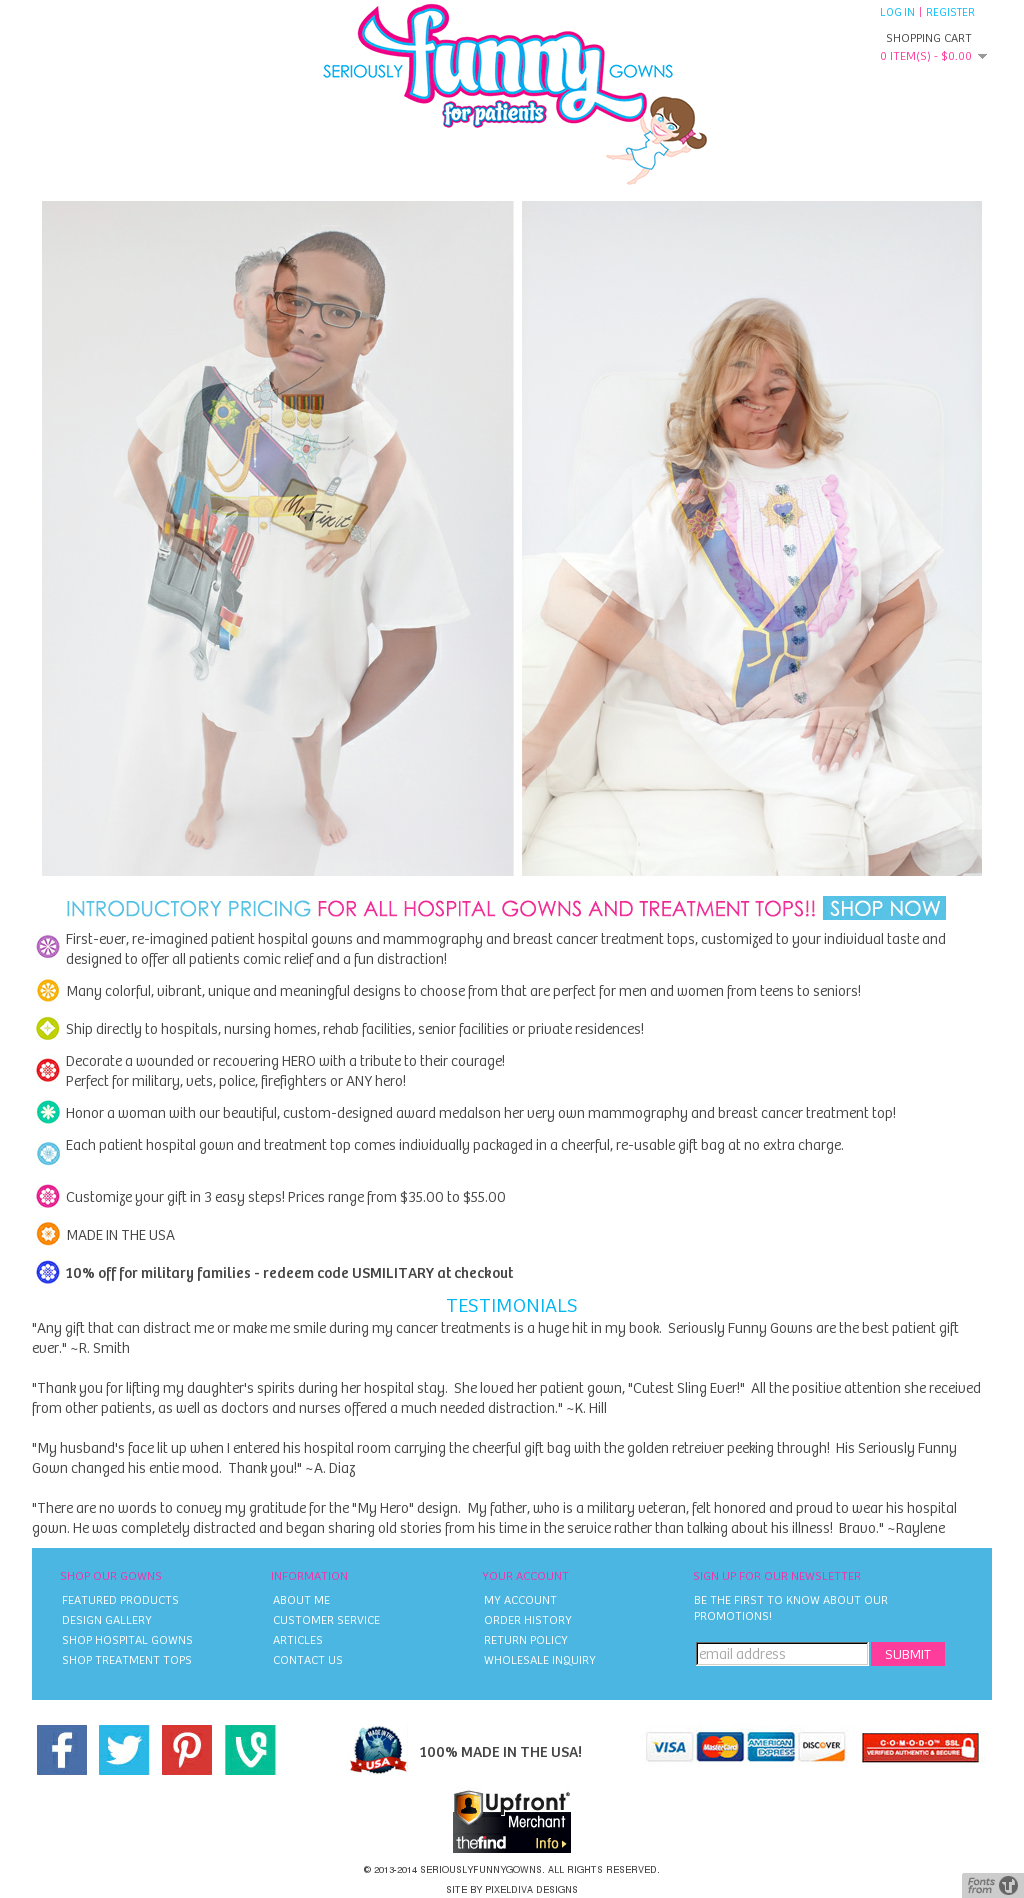 Seriously Funny Gowns Competitors, Revenue and Employees - Owler ...